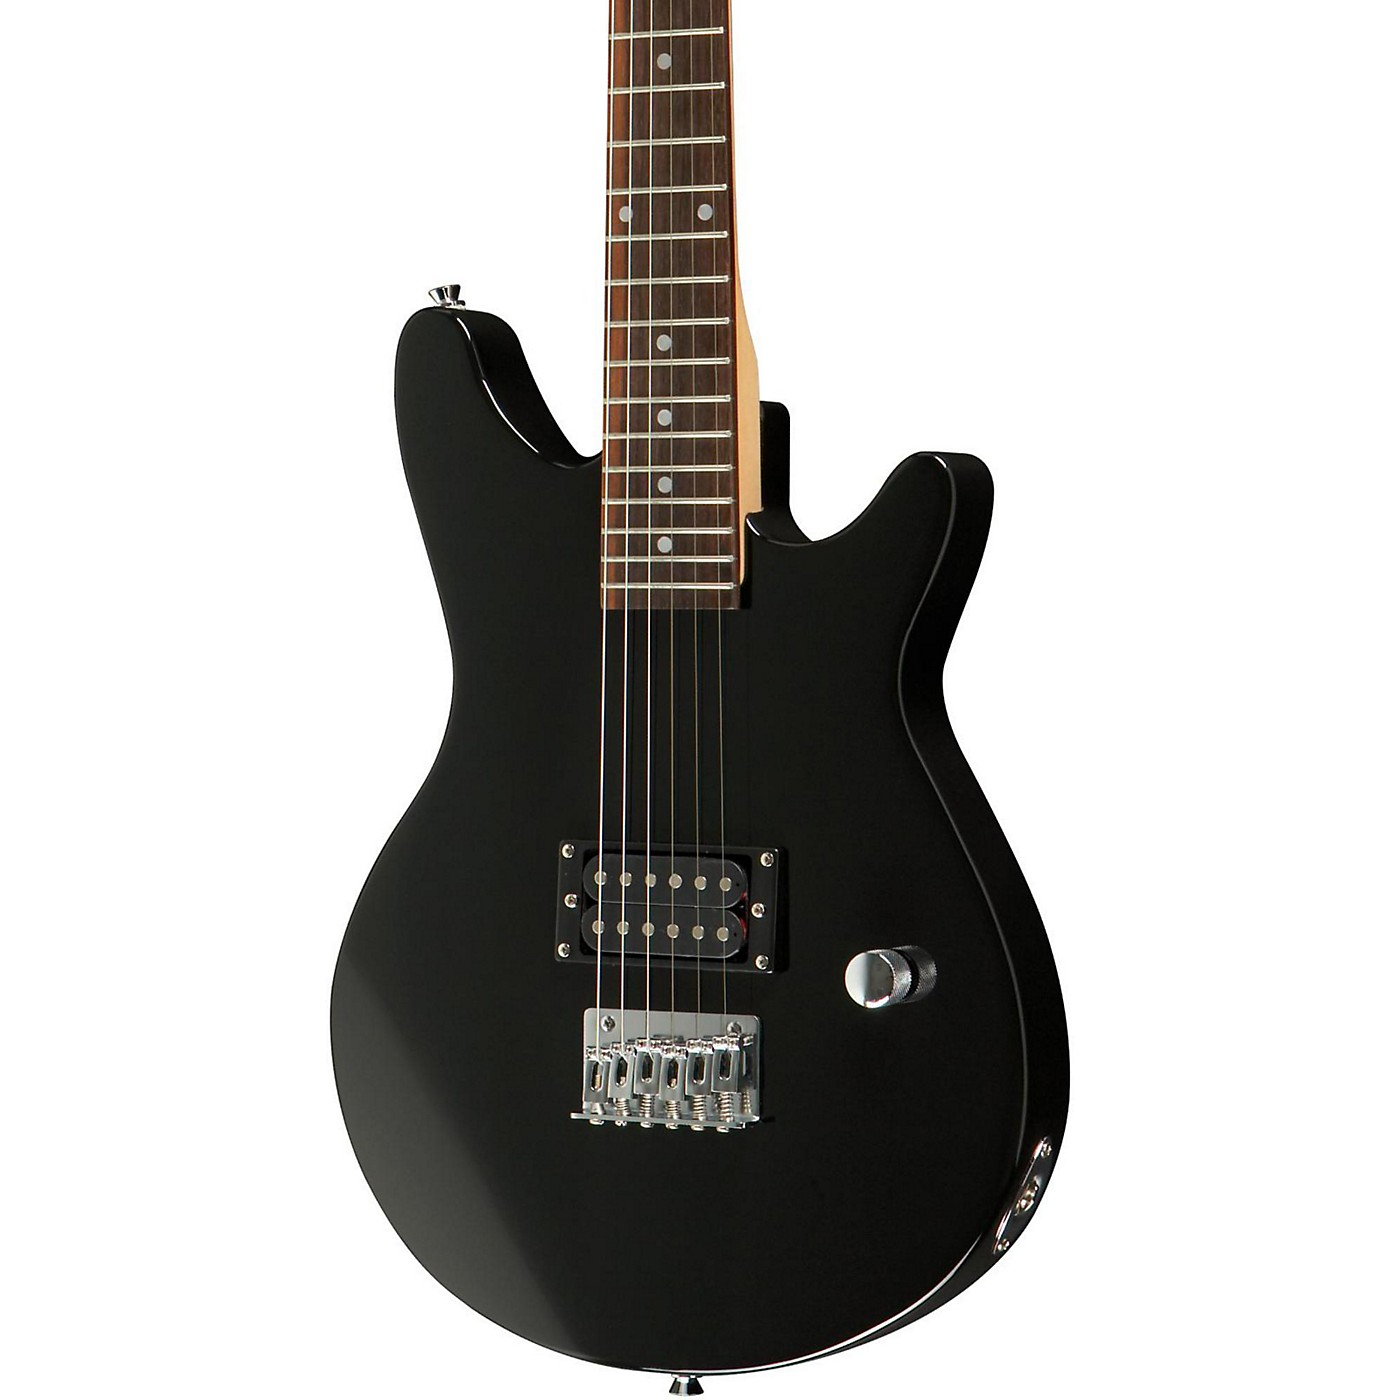 Rogue Rocketeer RR50 7/8 Scale Electric Guitar thumbnail